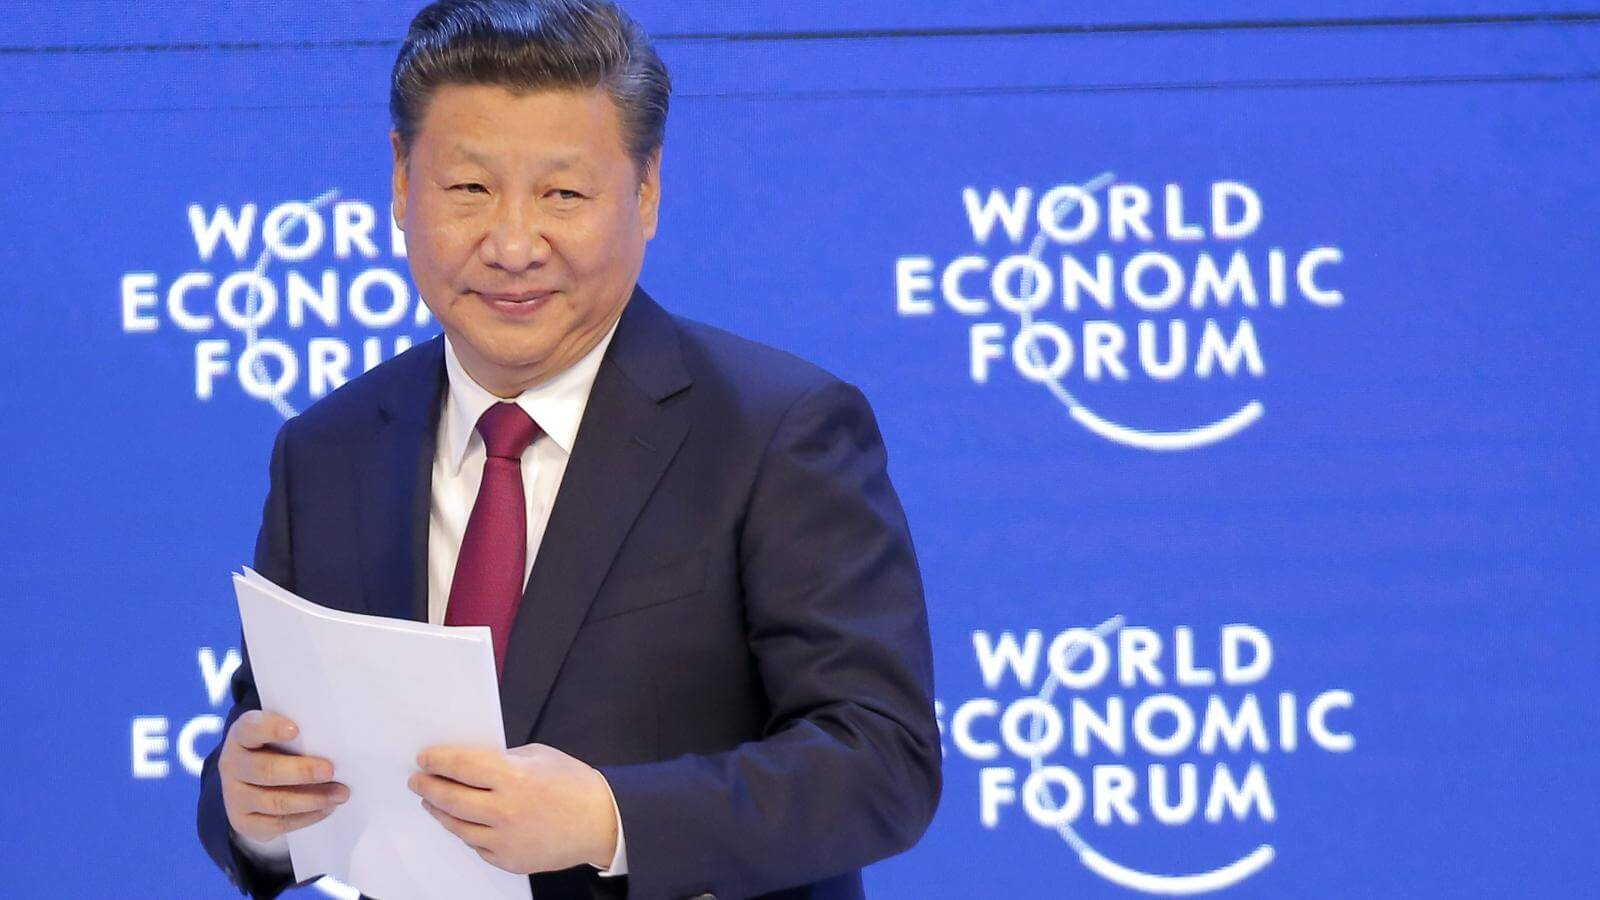 Chinese Business Leaders' Message in Davos is not to worry about Economy